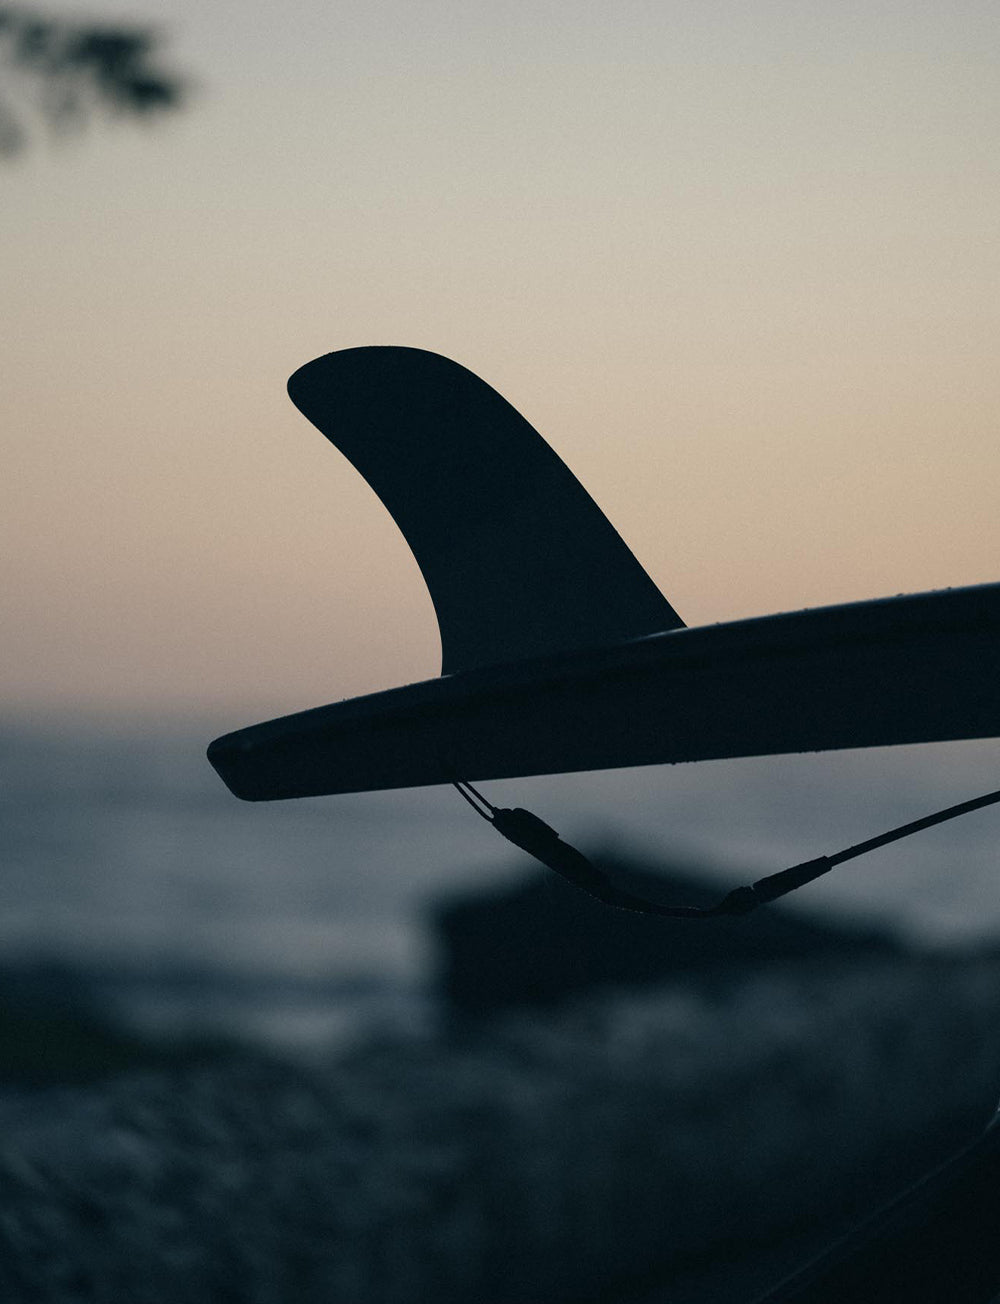 Silhoette of a single-fin longboard surfboard with a dusky sunset background.